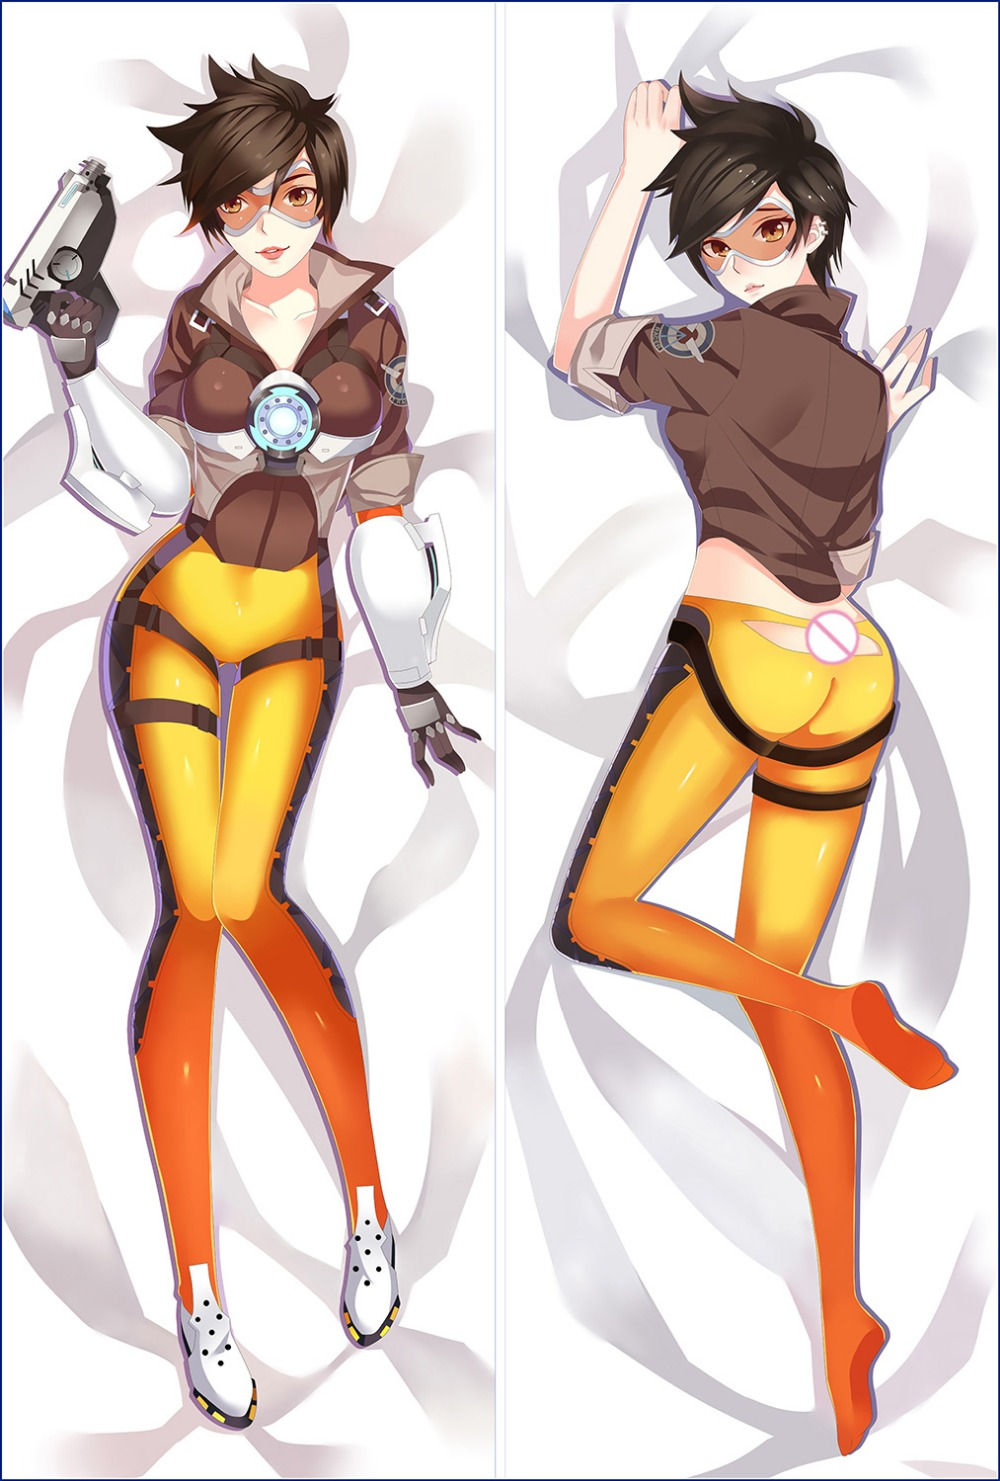 Oct. 2016 update team-based multiplayer first-person shooter video game sexy girl Tracer Lena Oxton Body PillowCase image